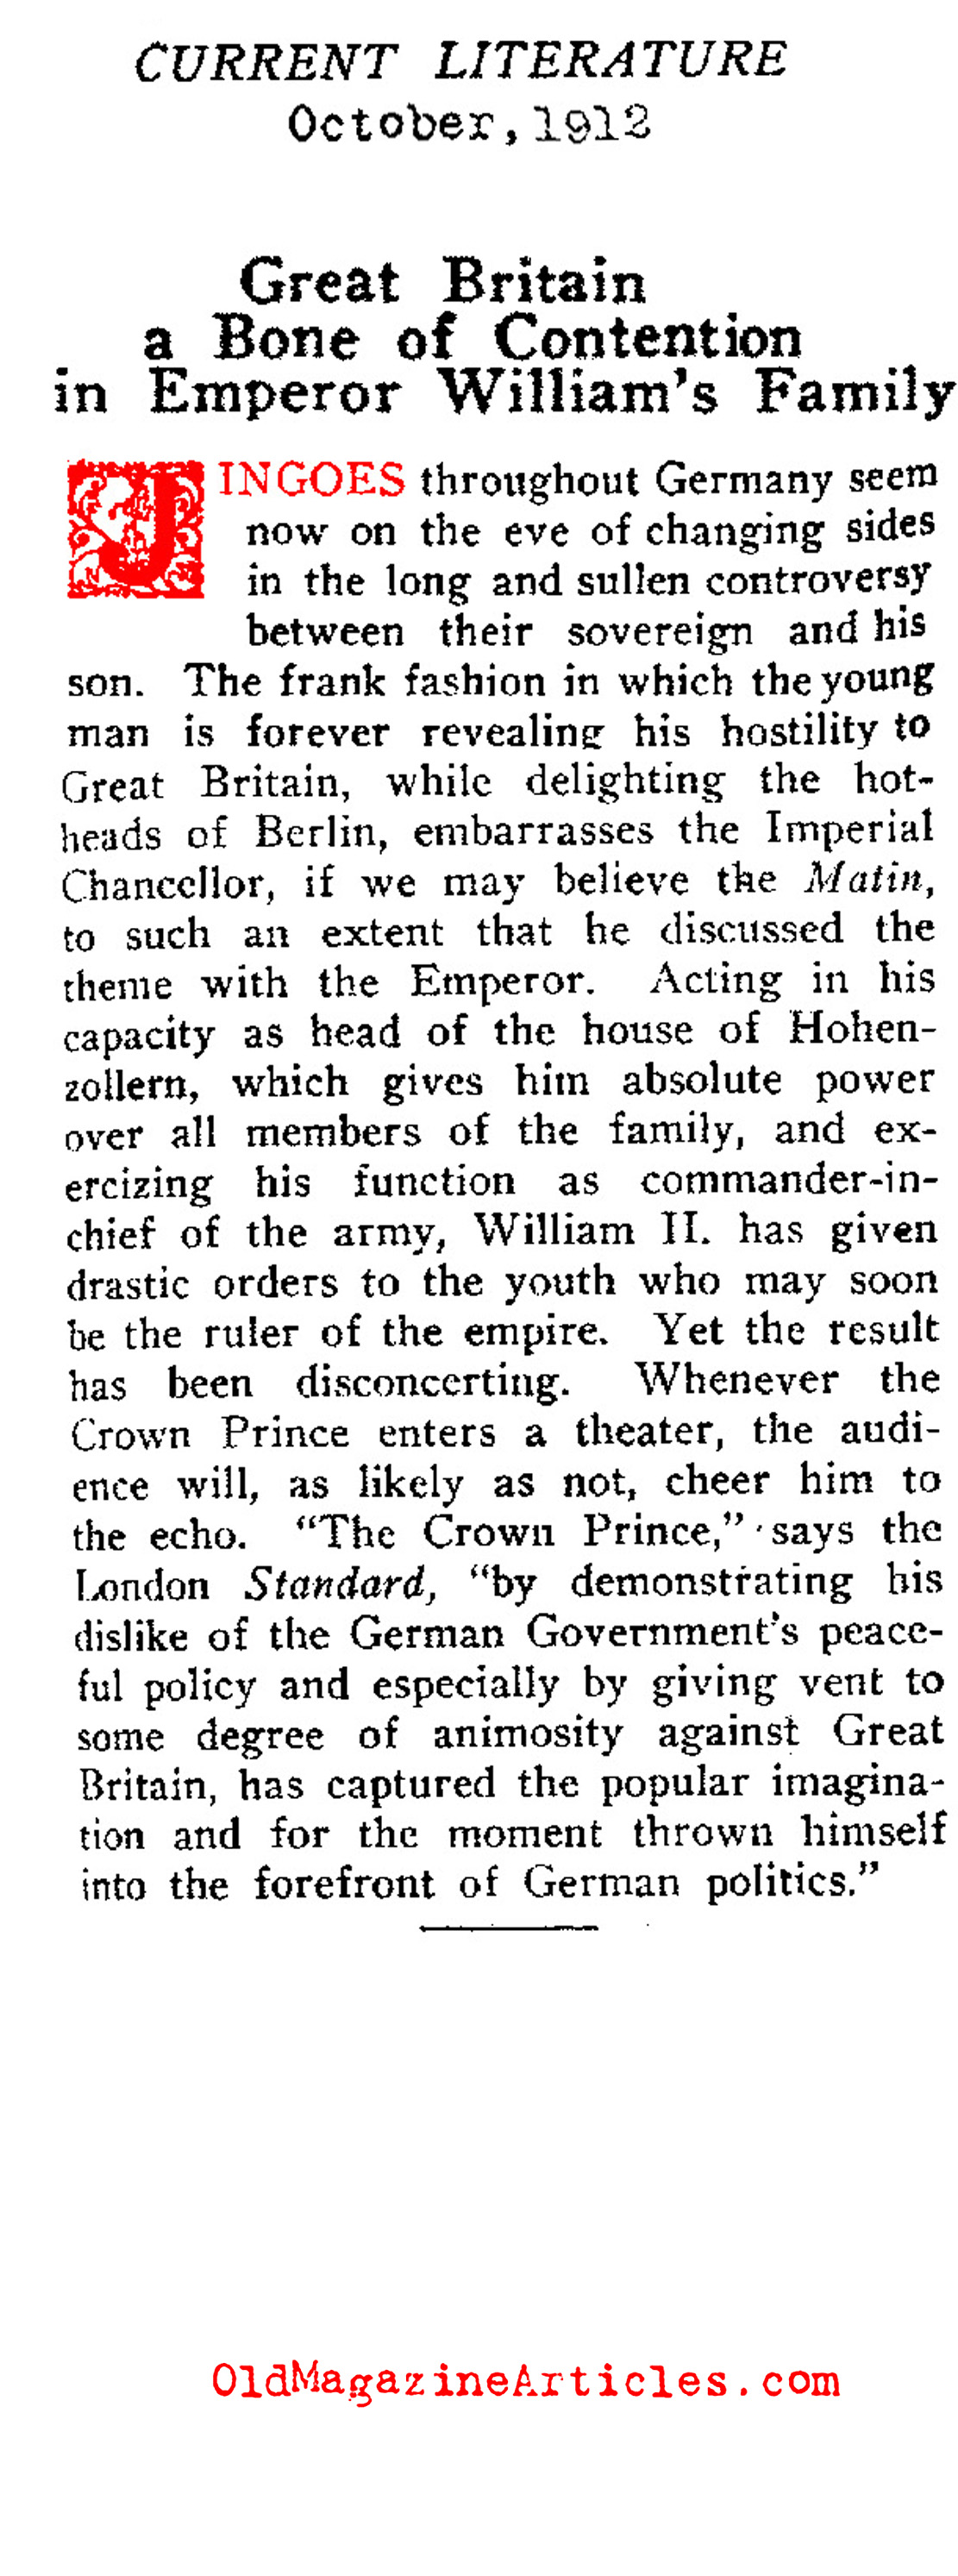 Father and Son Discord: Wilhelm II and the Crown Prince (Current Literature, 1912)